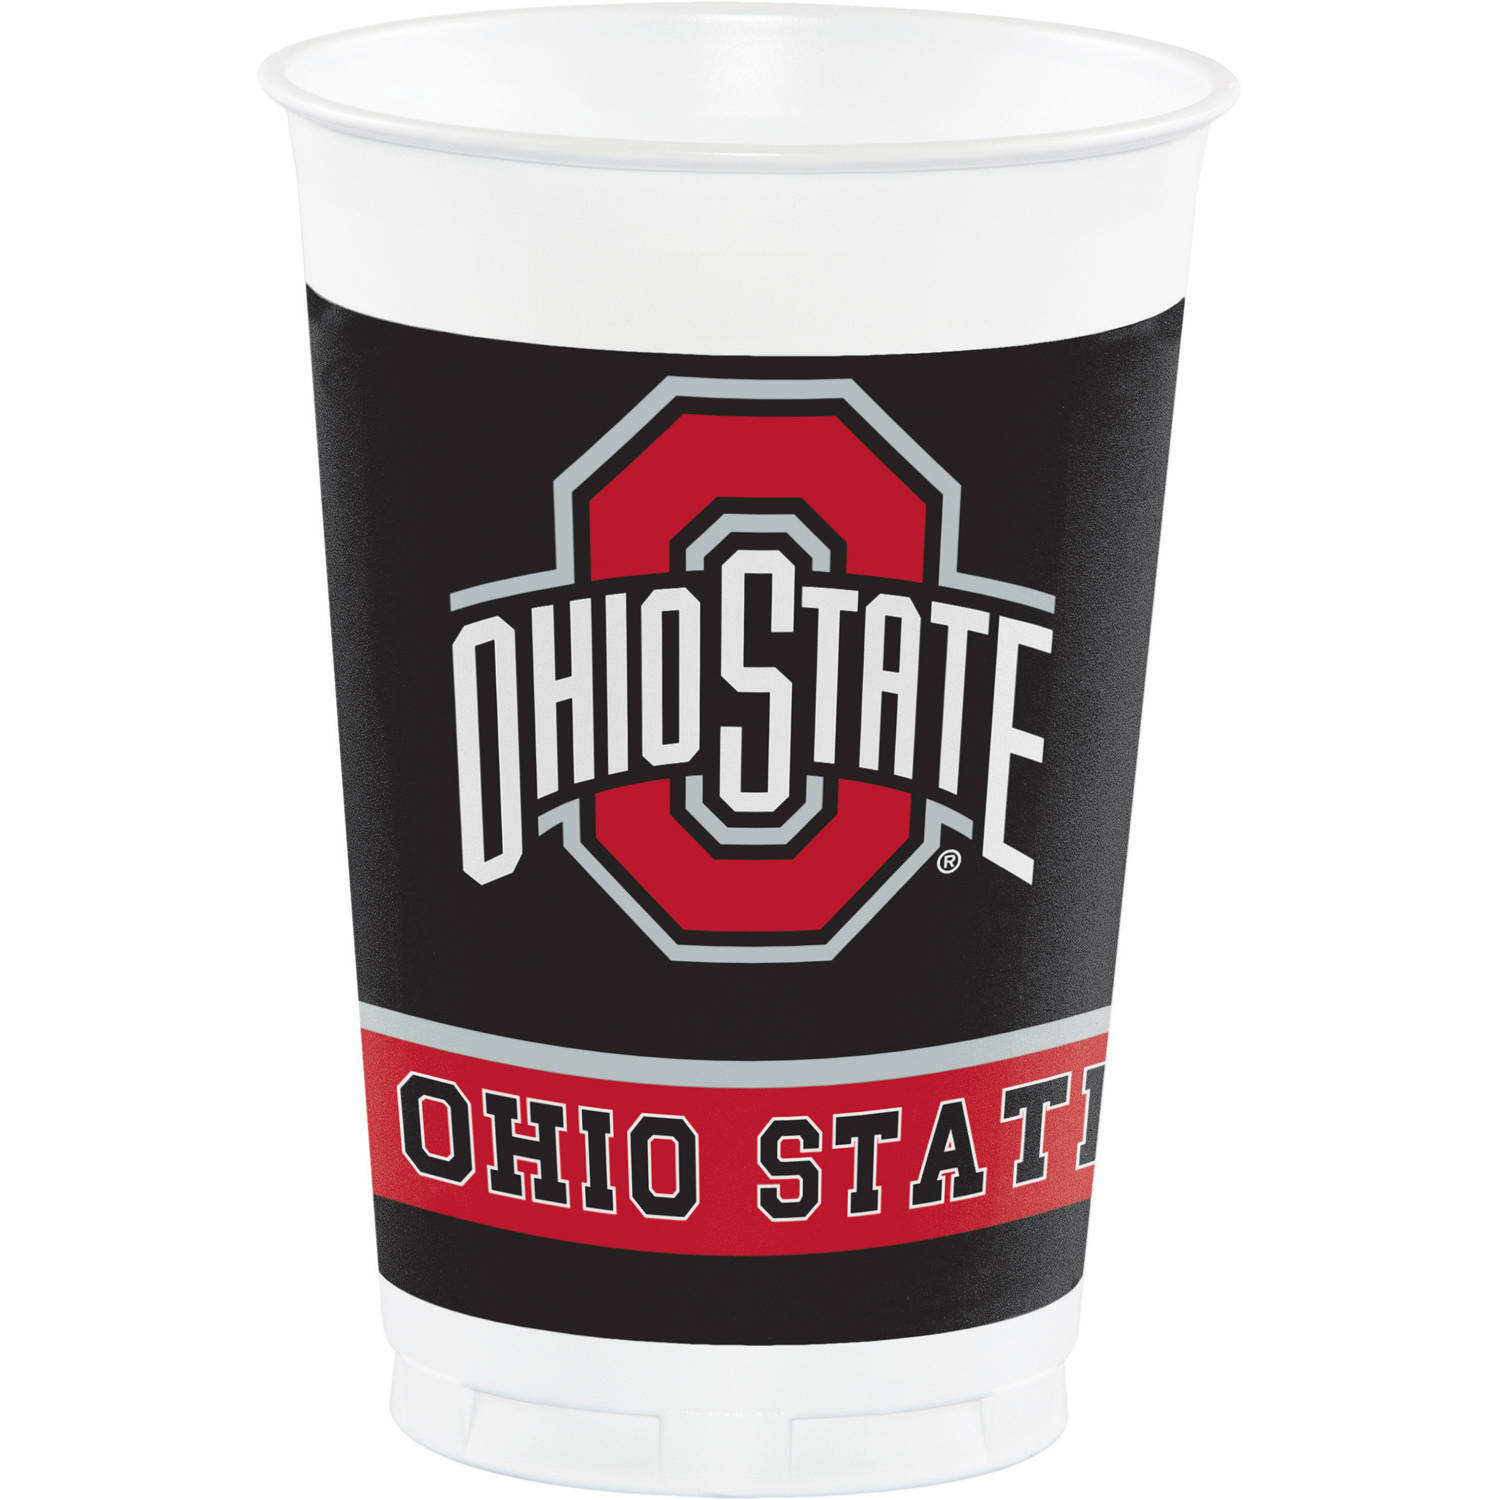 Ohio State University Plastic Cups, 8pk